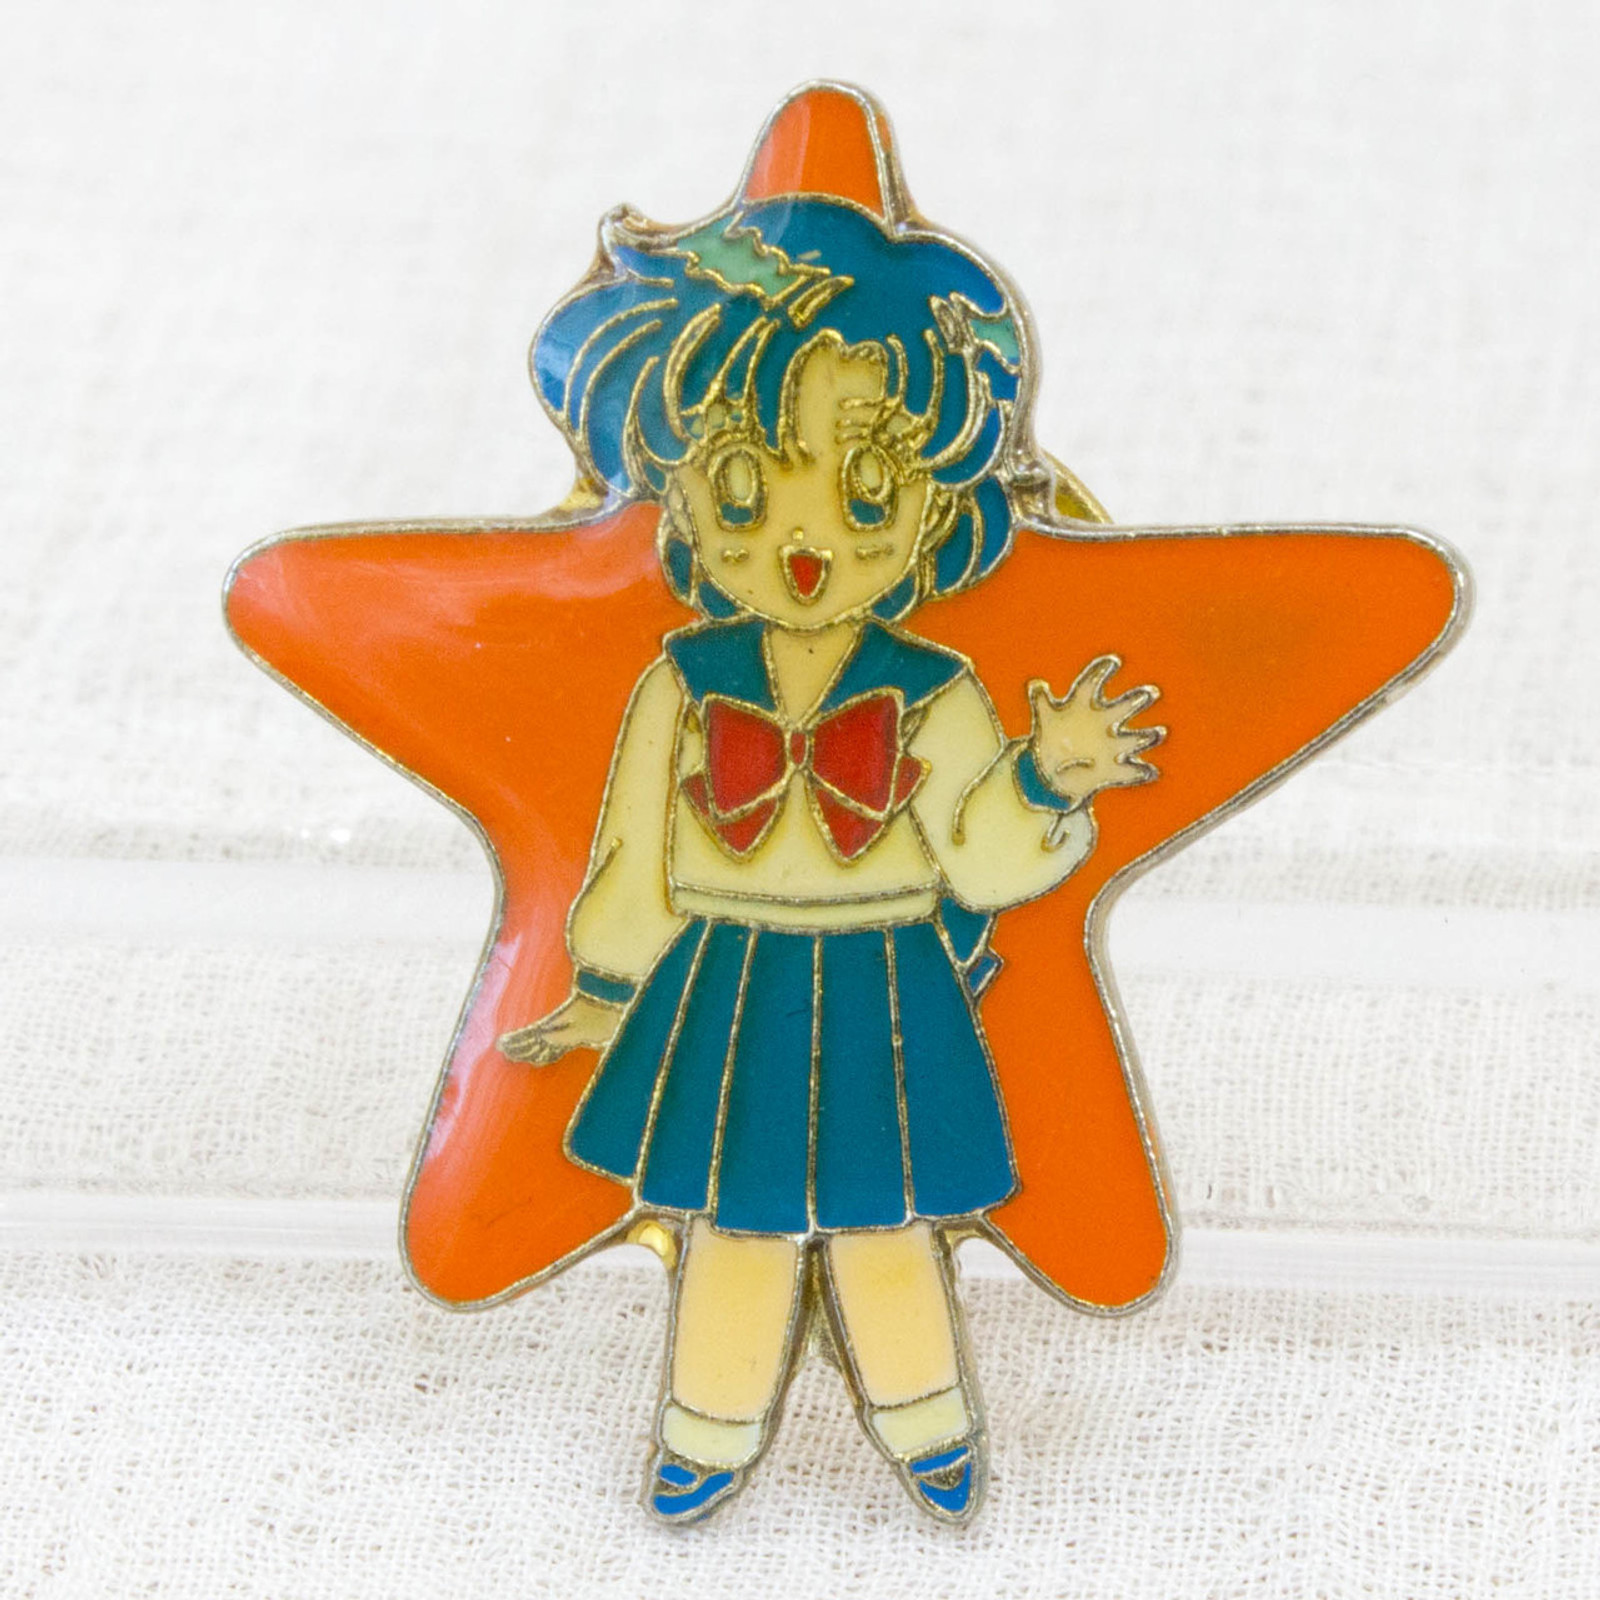 Sailor Moon Ami Mizuno (Sailor Mercury) Metal Pins Badge JAPAN ANIME